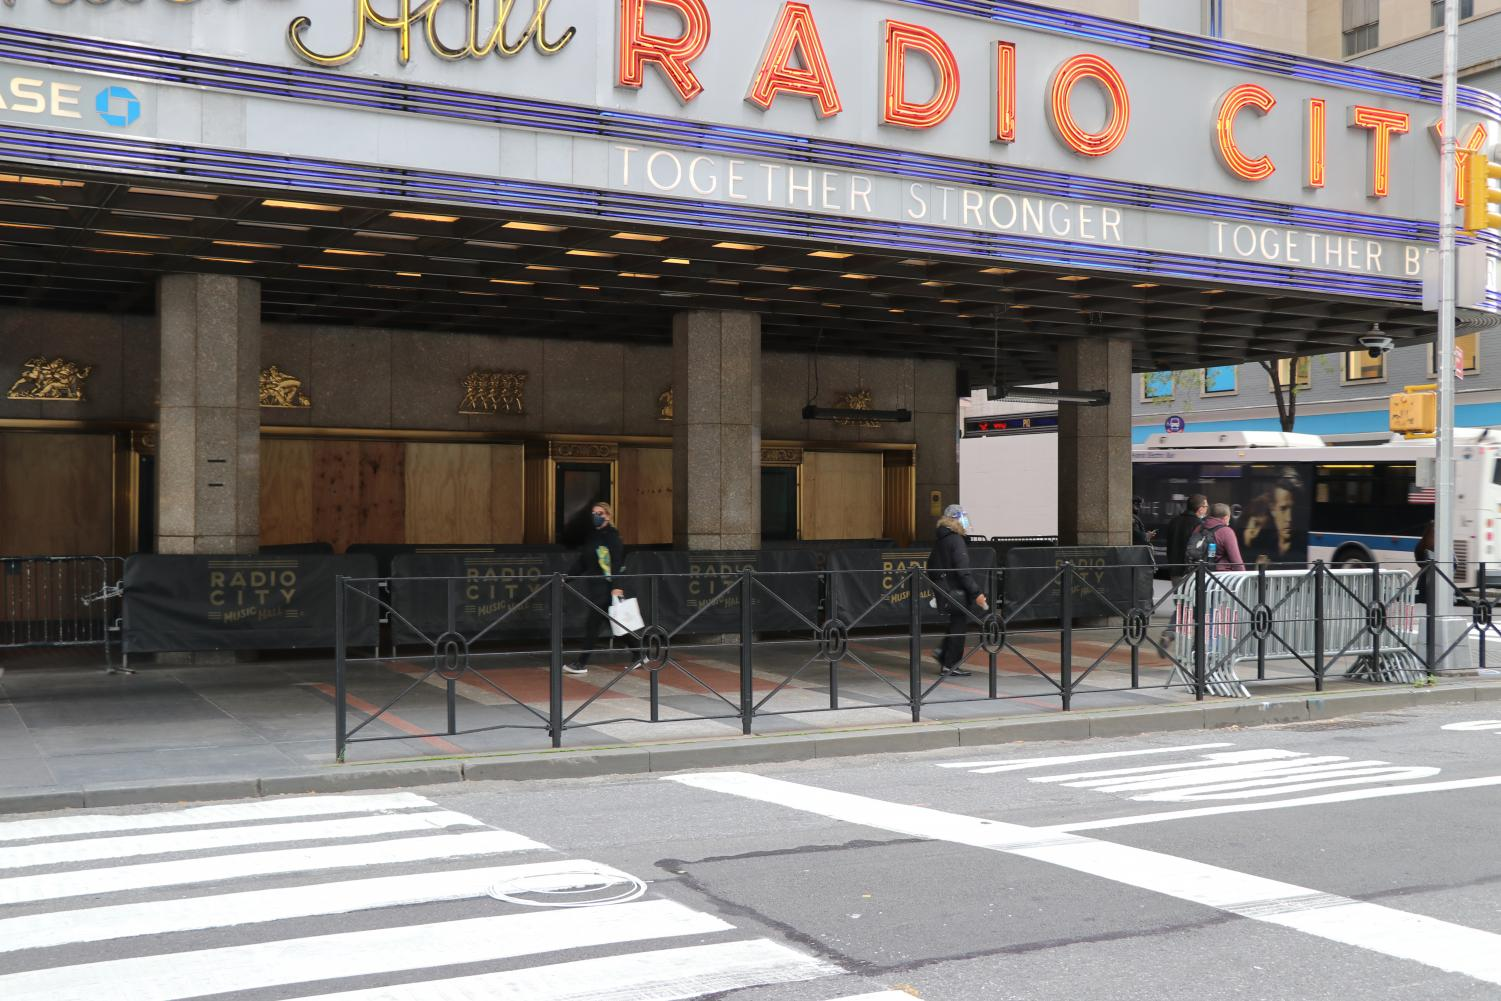 Radio City Music Hall seen from the street with boards on the windows